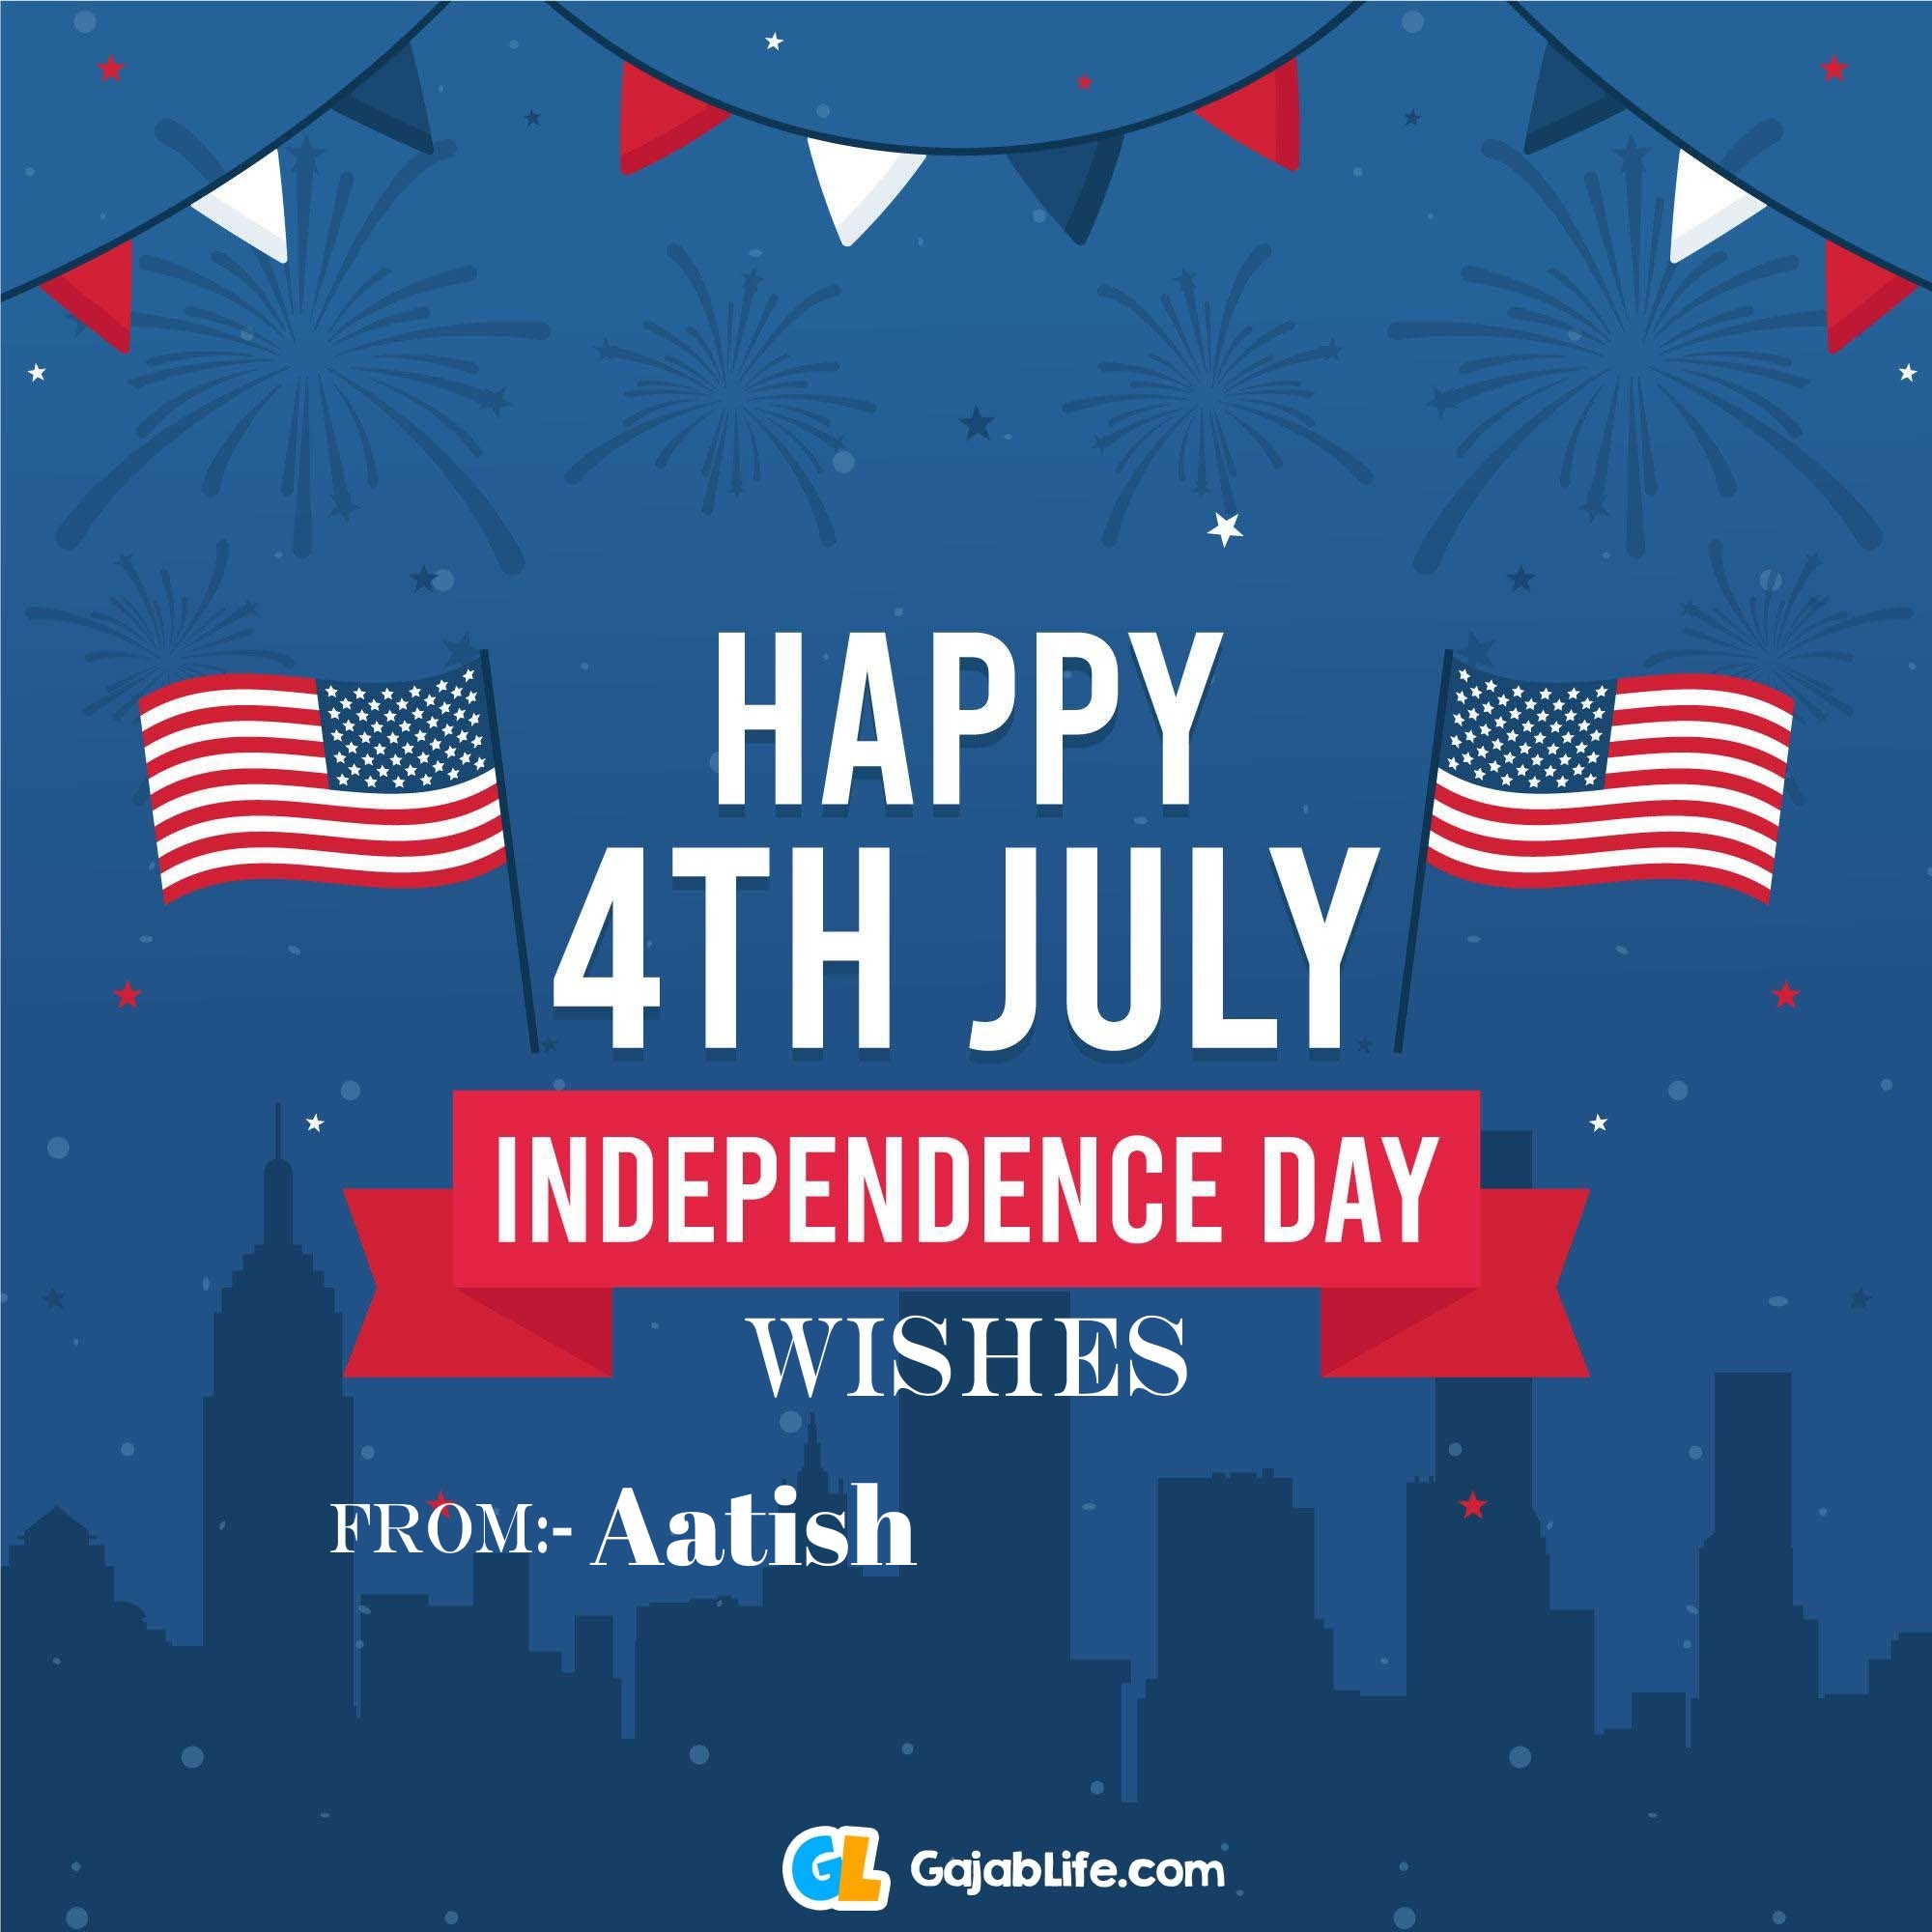 Aatish happy independence day united states of america images